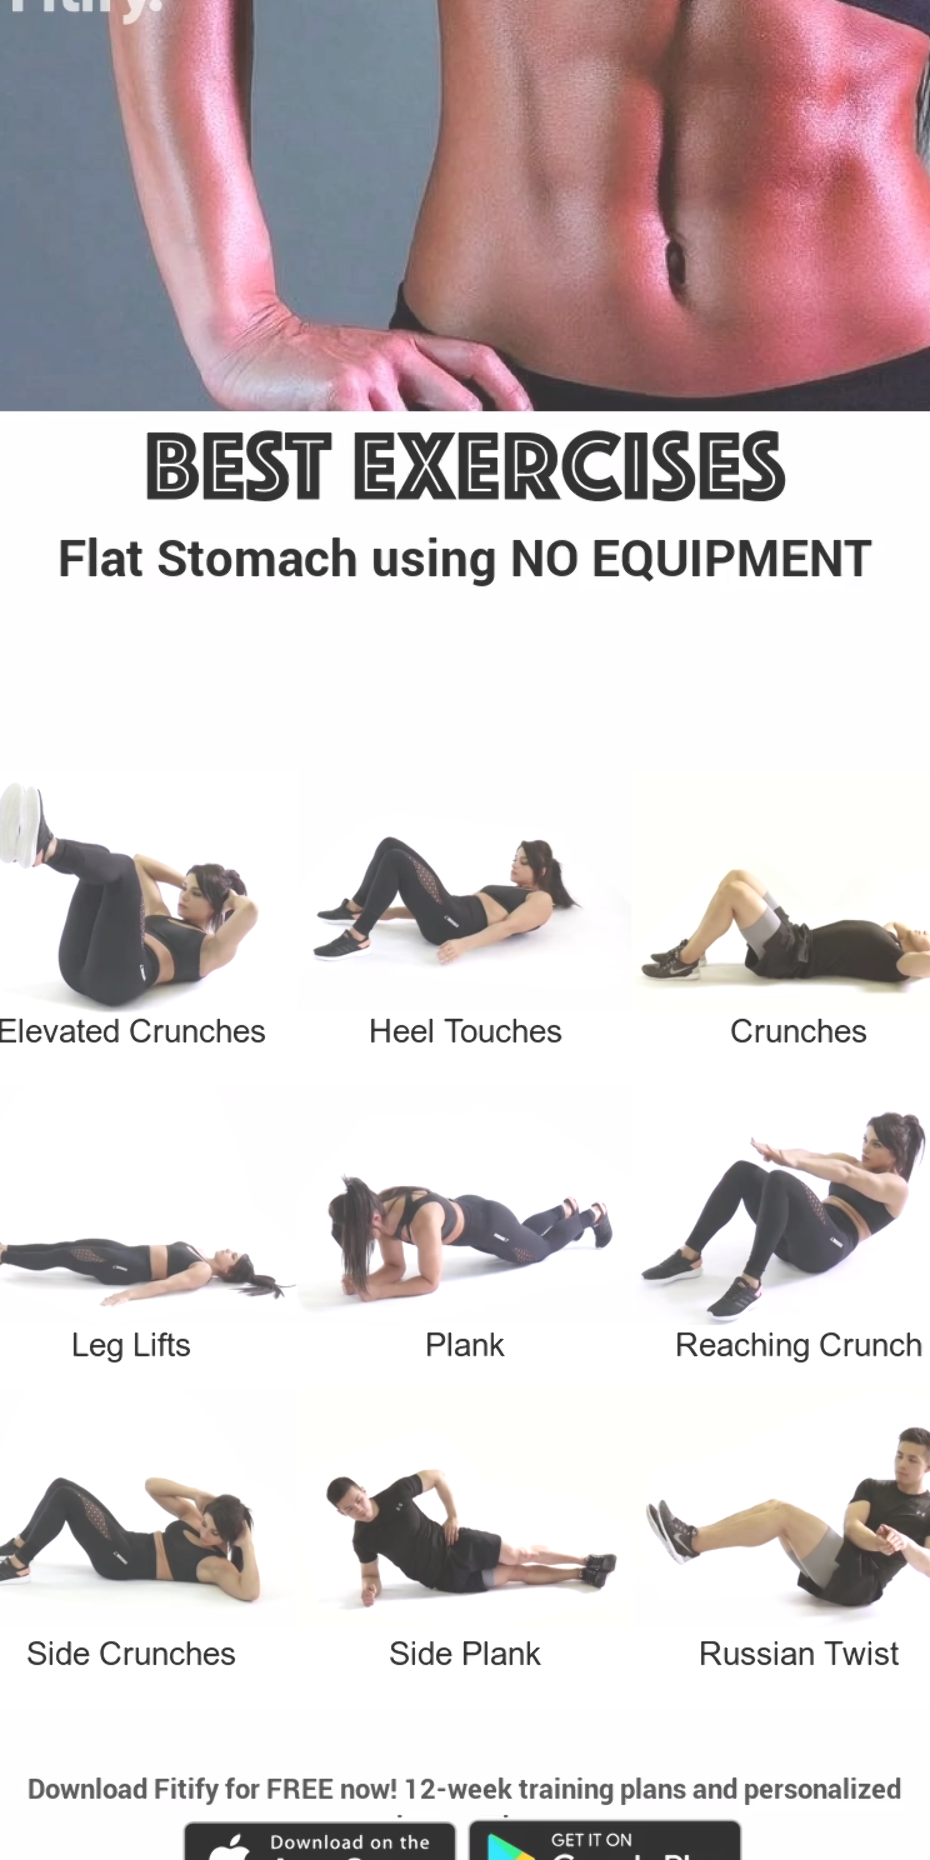 6 Pack for Women ...with NO EQUIPMENT... Ab workout that will get you a shredded six pack in no time...